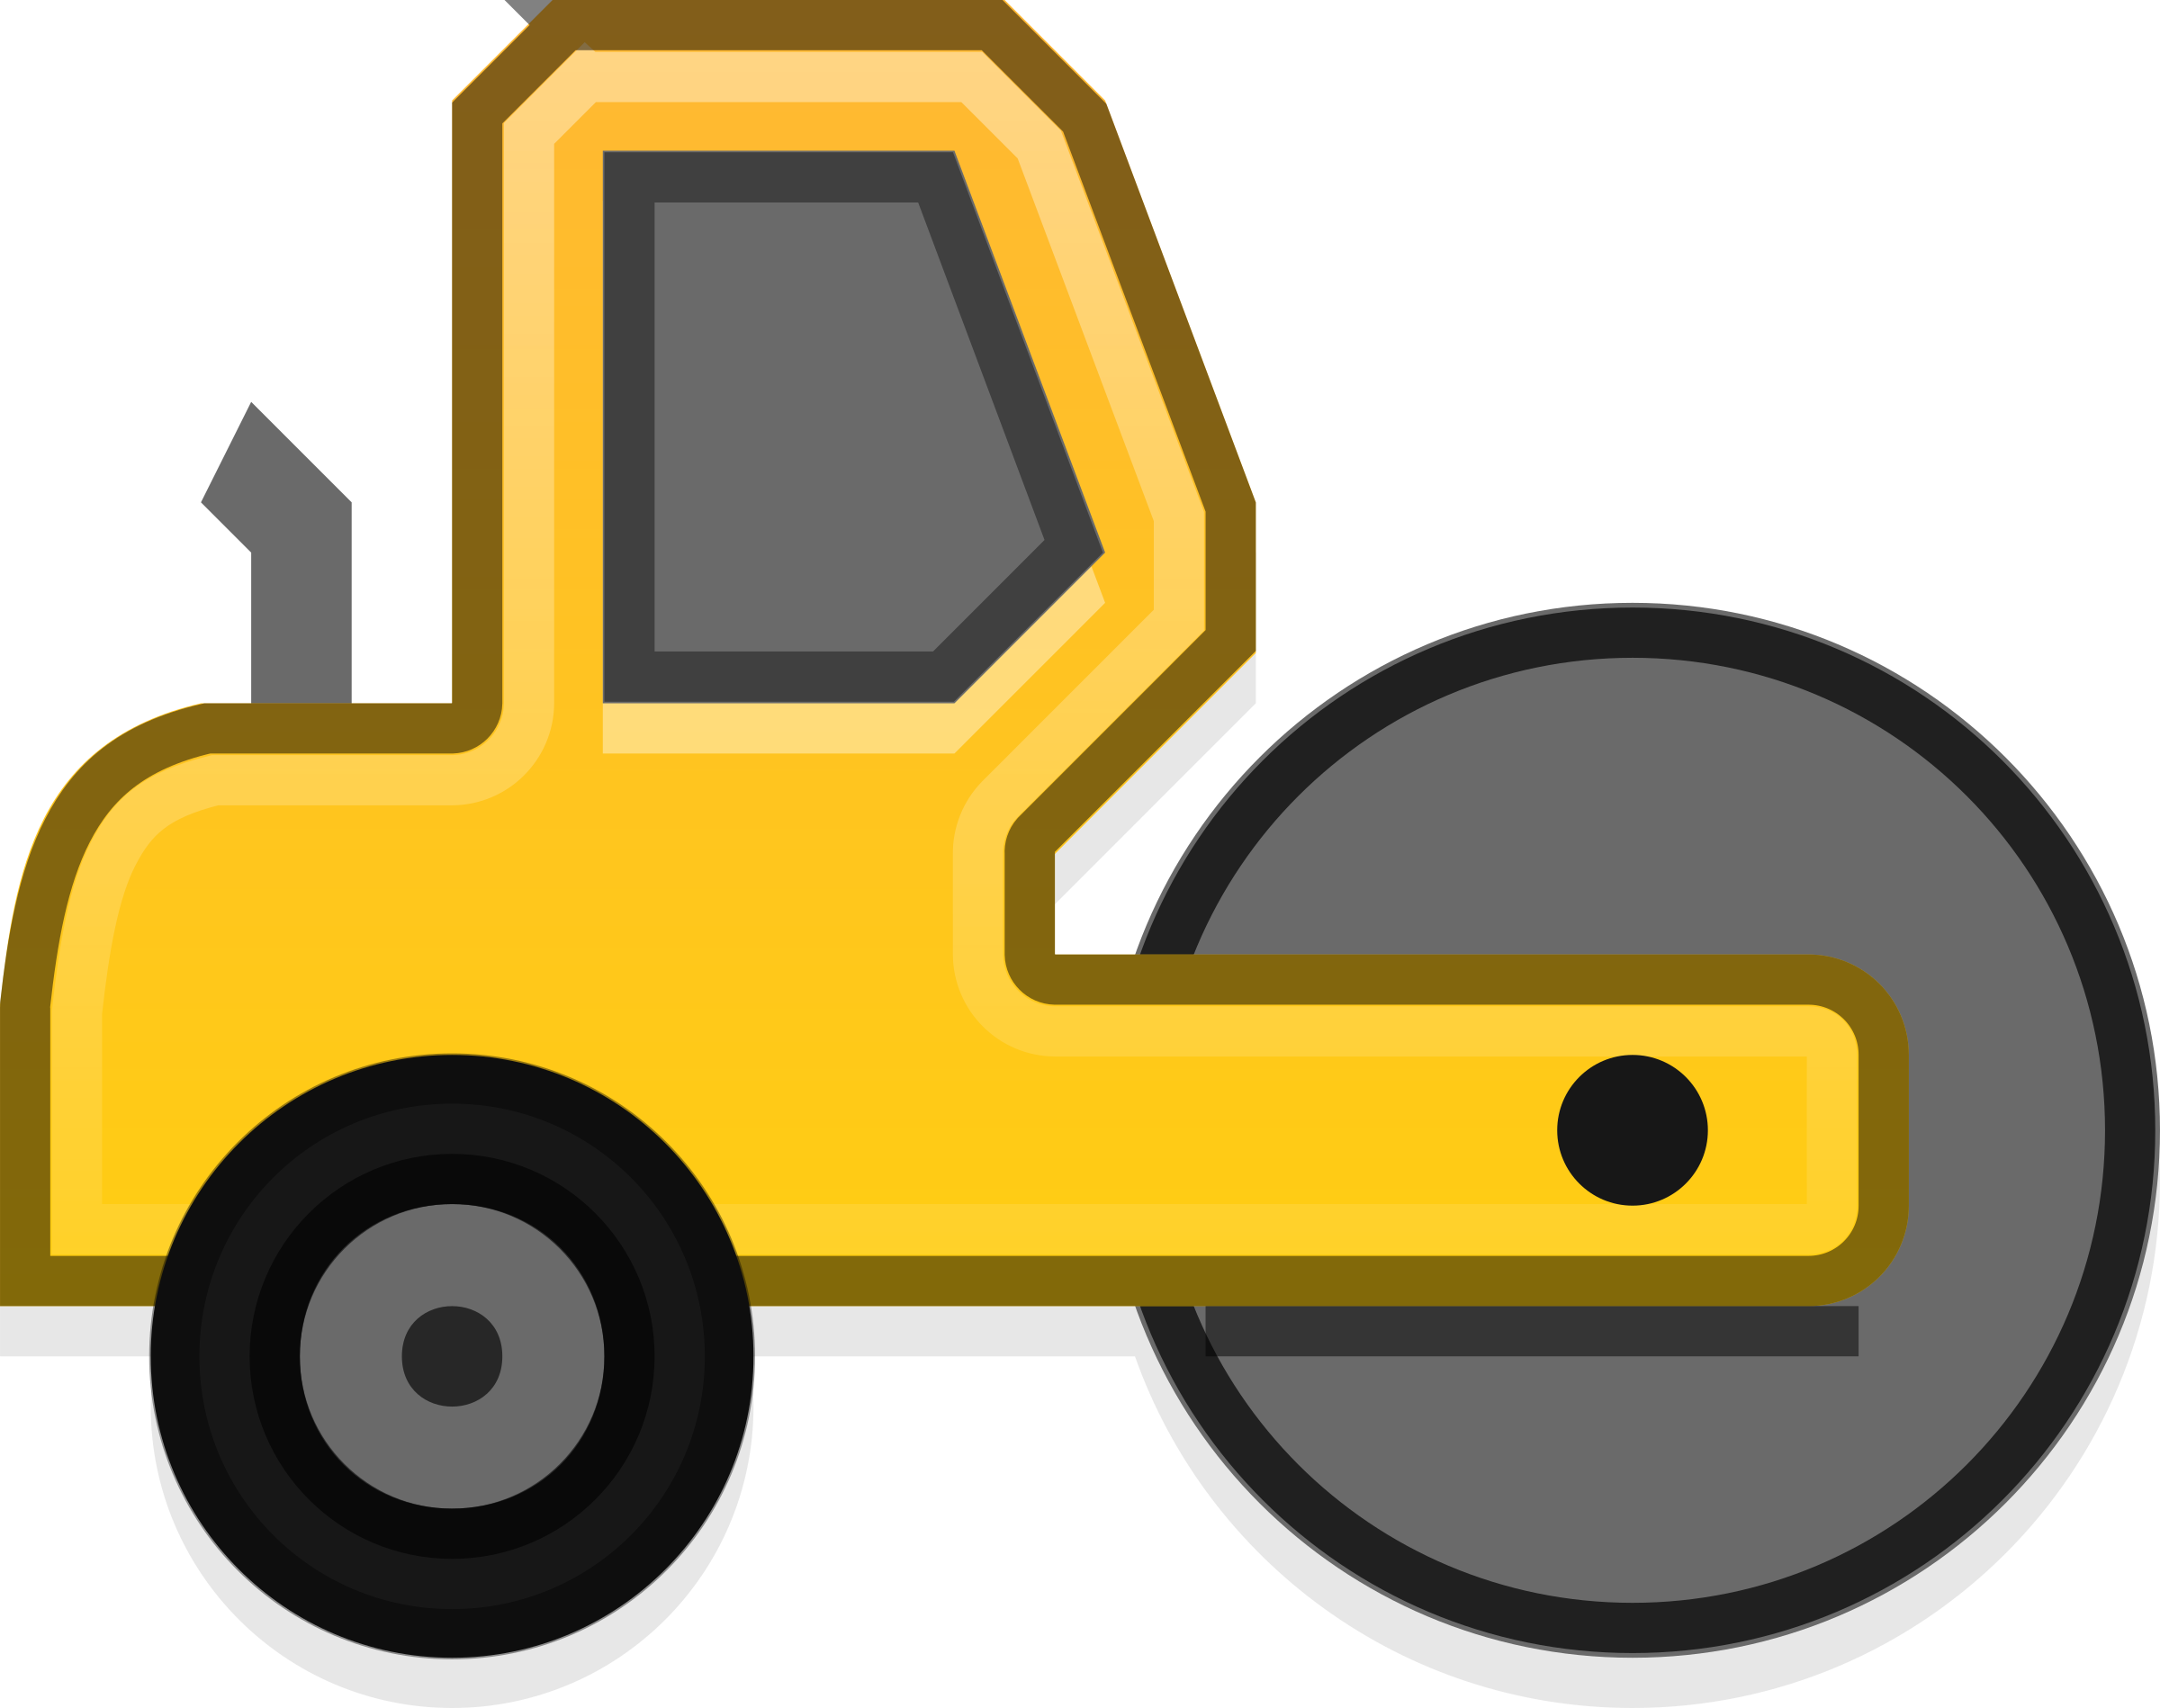 Contractor clipart construction equipment tool. Frames illustrations hd images